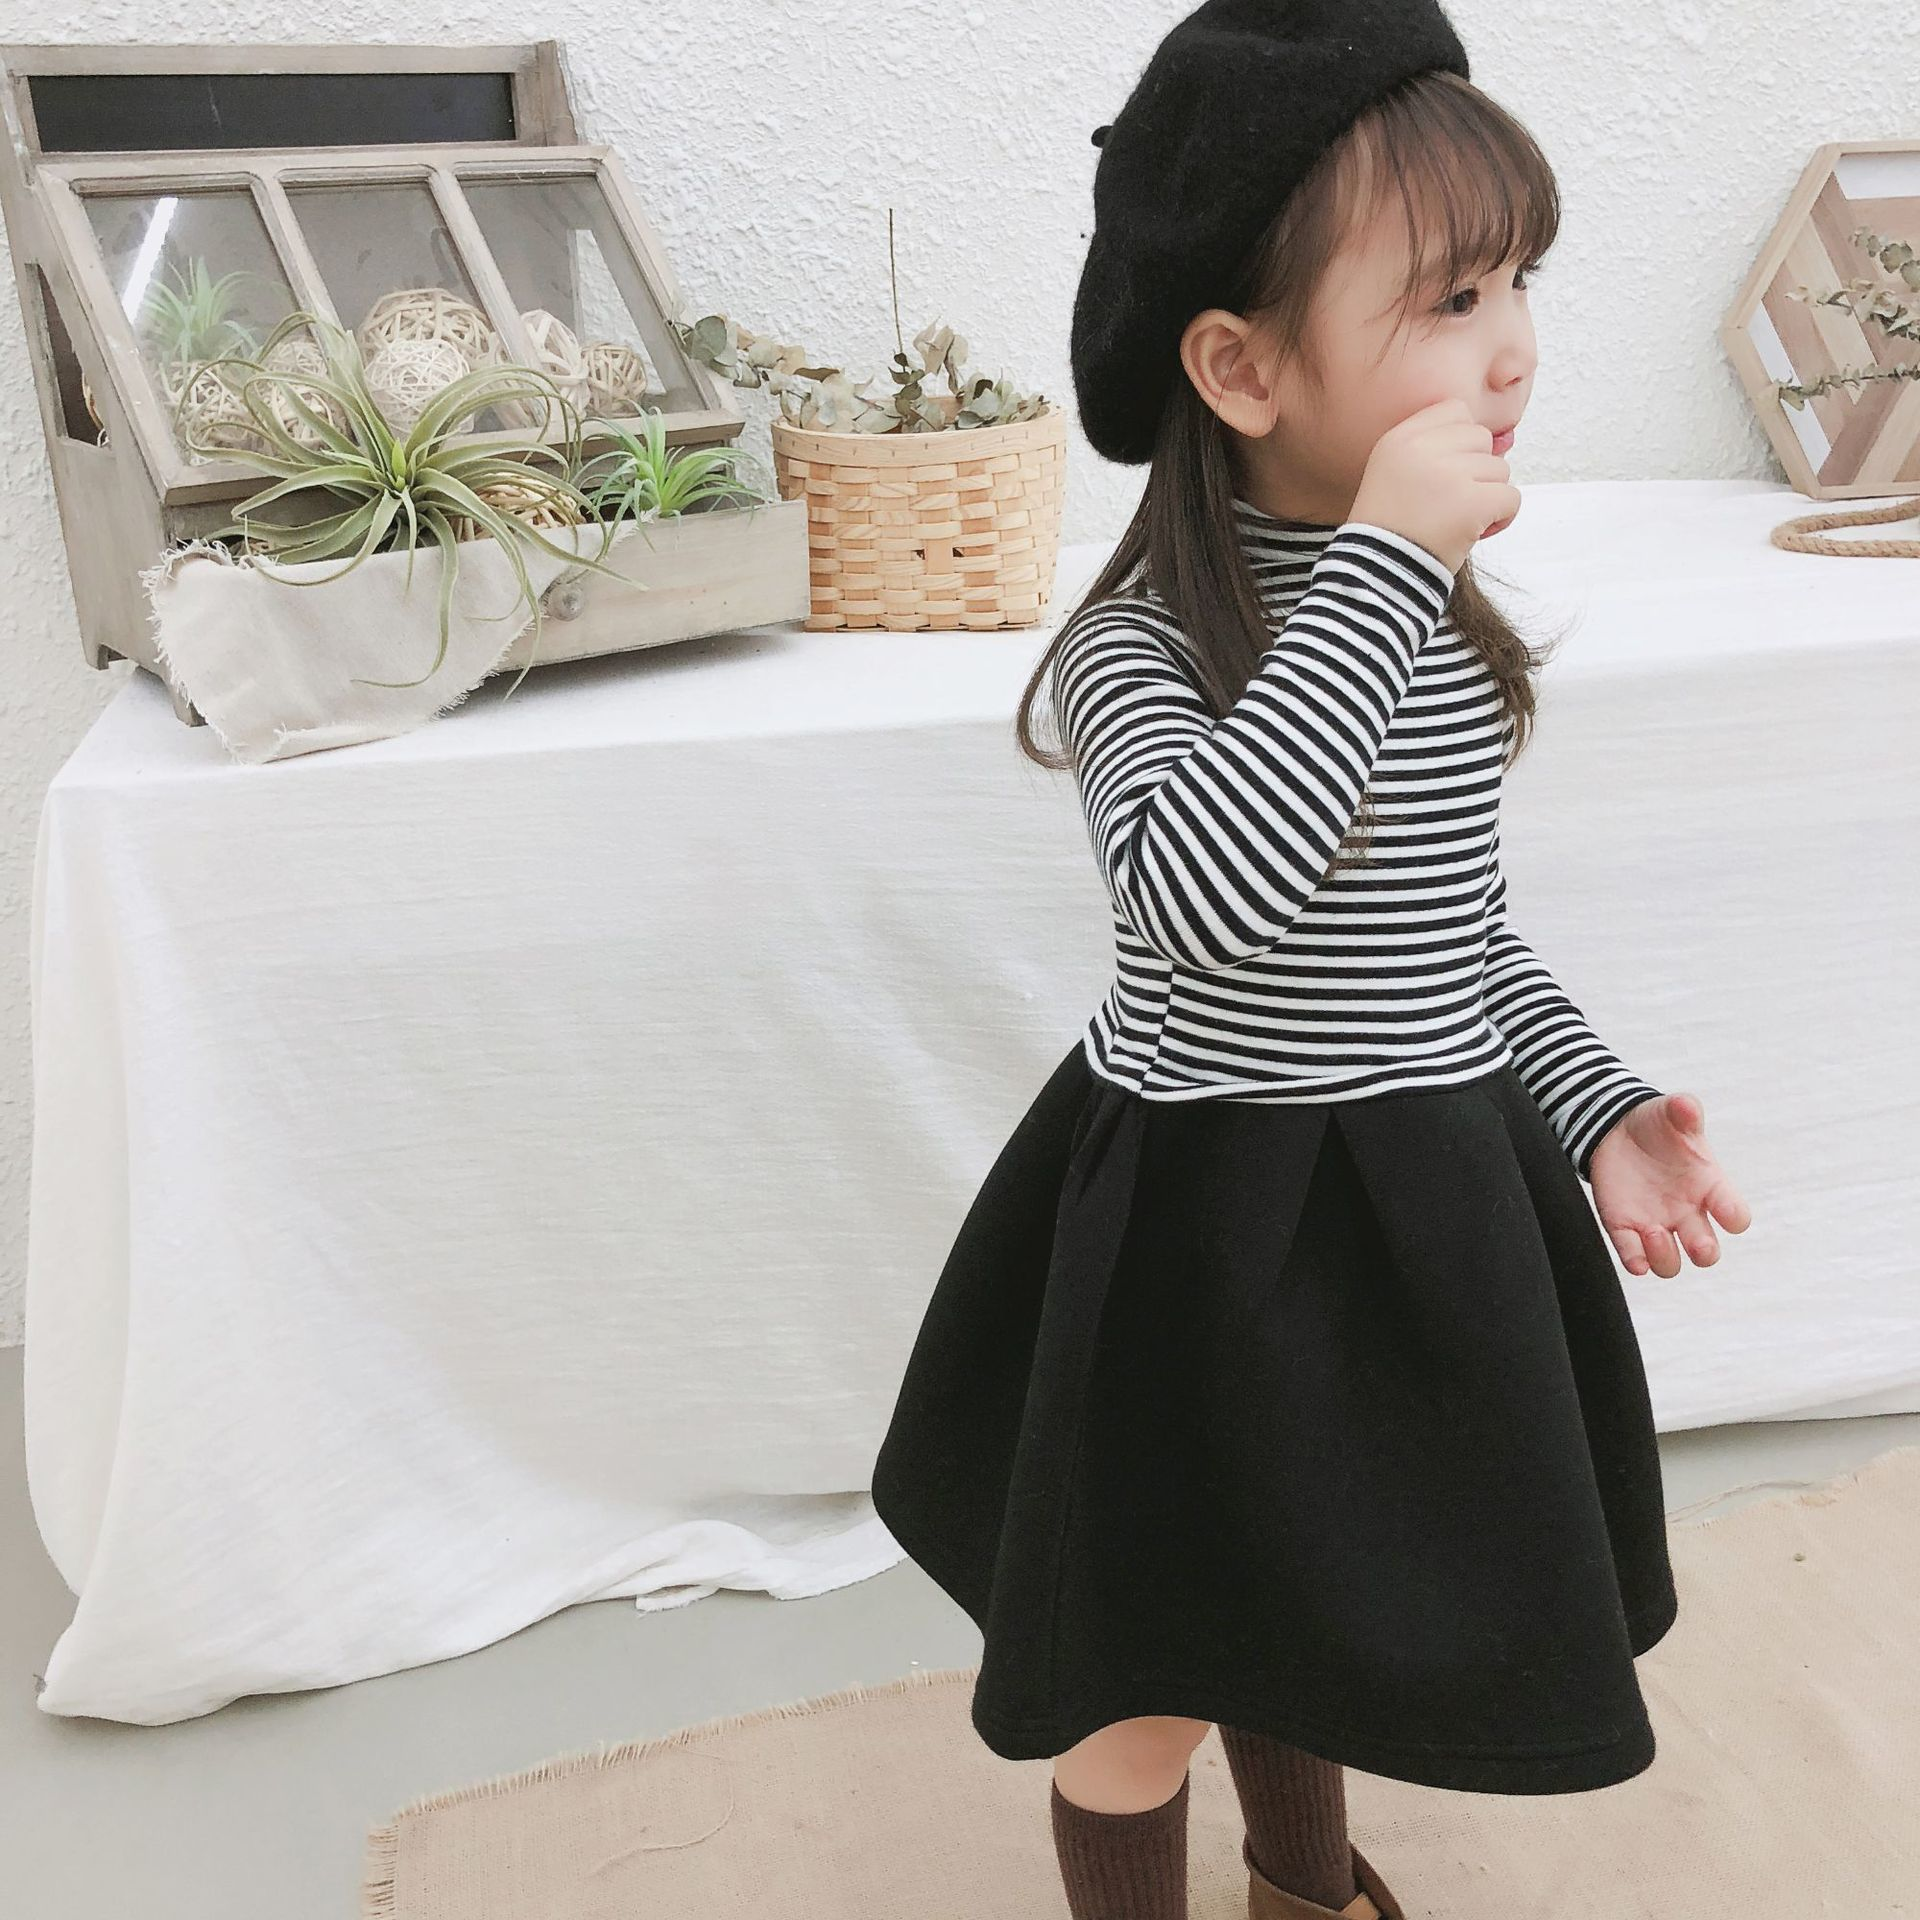 2019 Autumn And Winter New Arrival korean style cotton casual Striped all-match long sleeve Dress for cute sweet baby girls